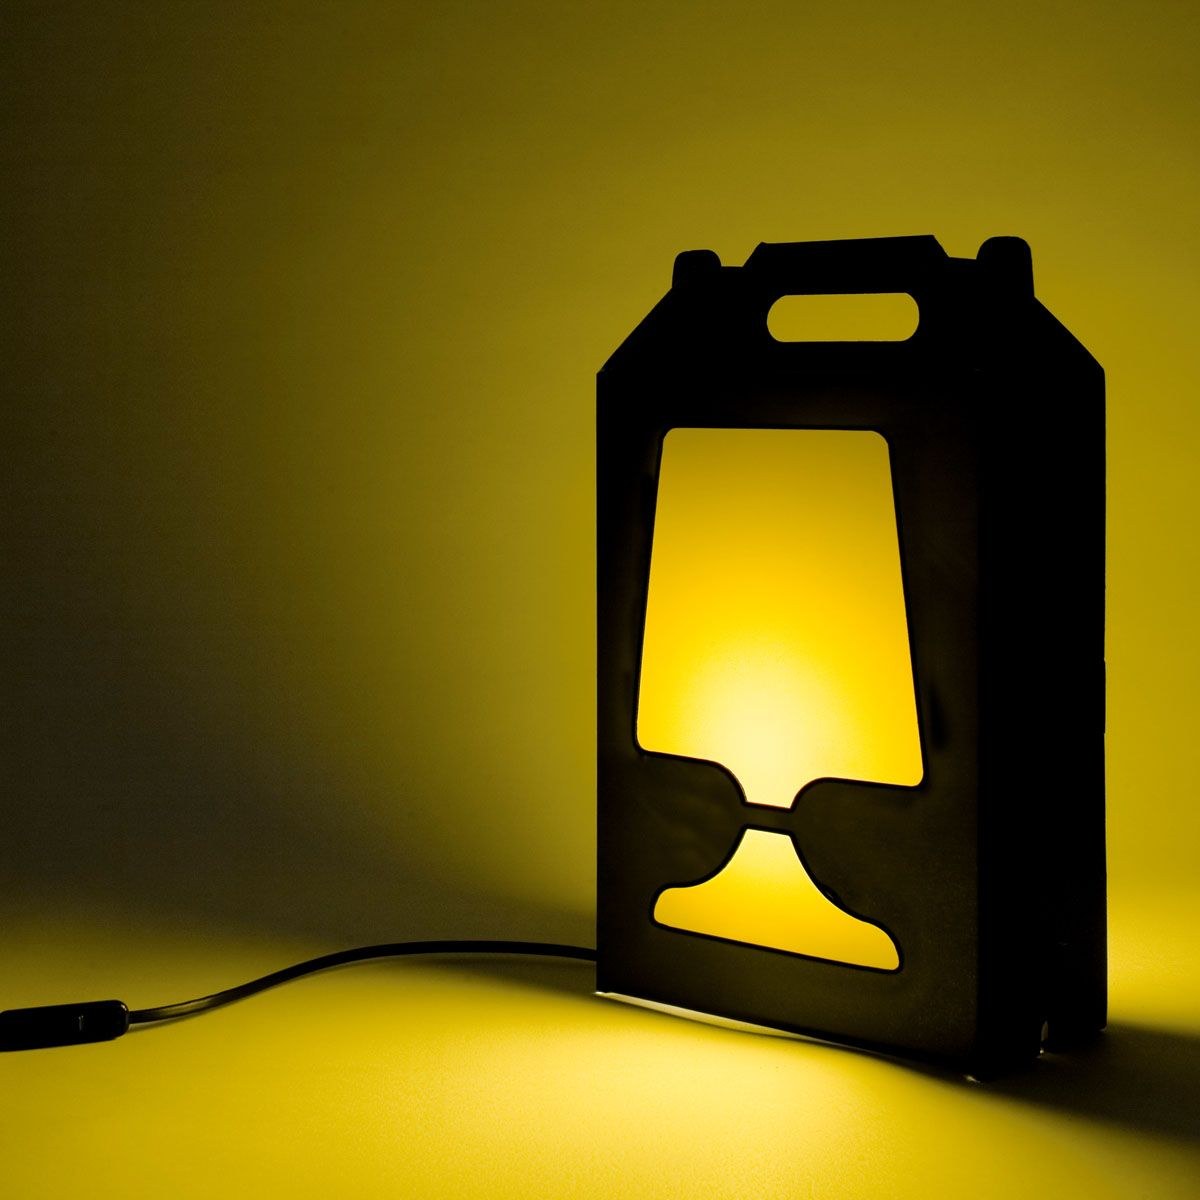 Iconic Lamp Design Flamp Noir Lamp Cable And Socket Come Within